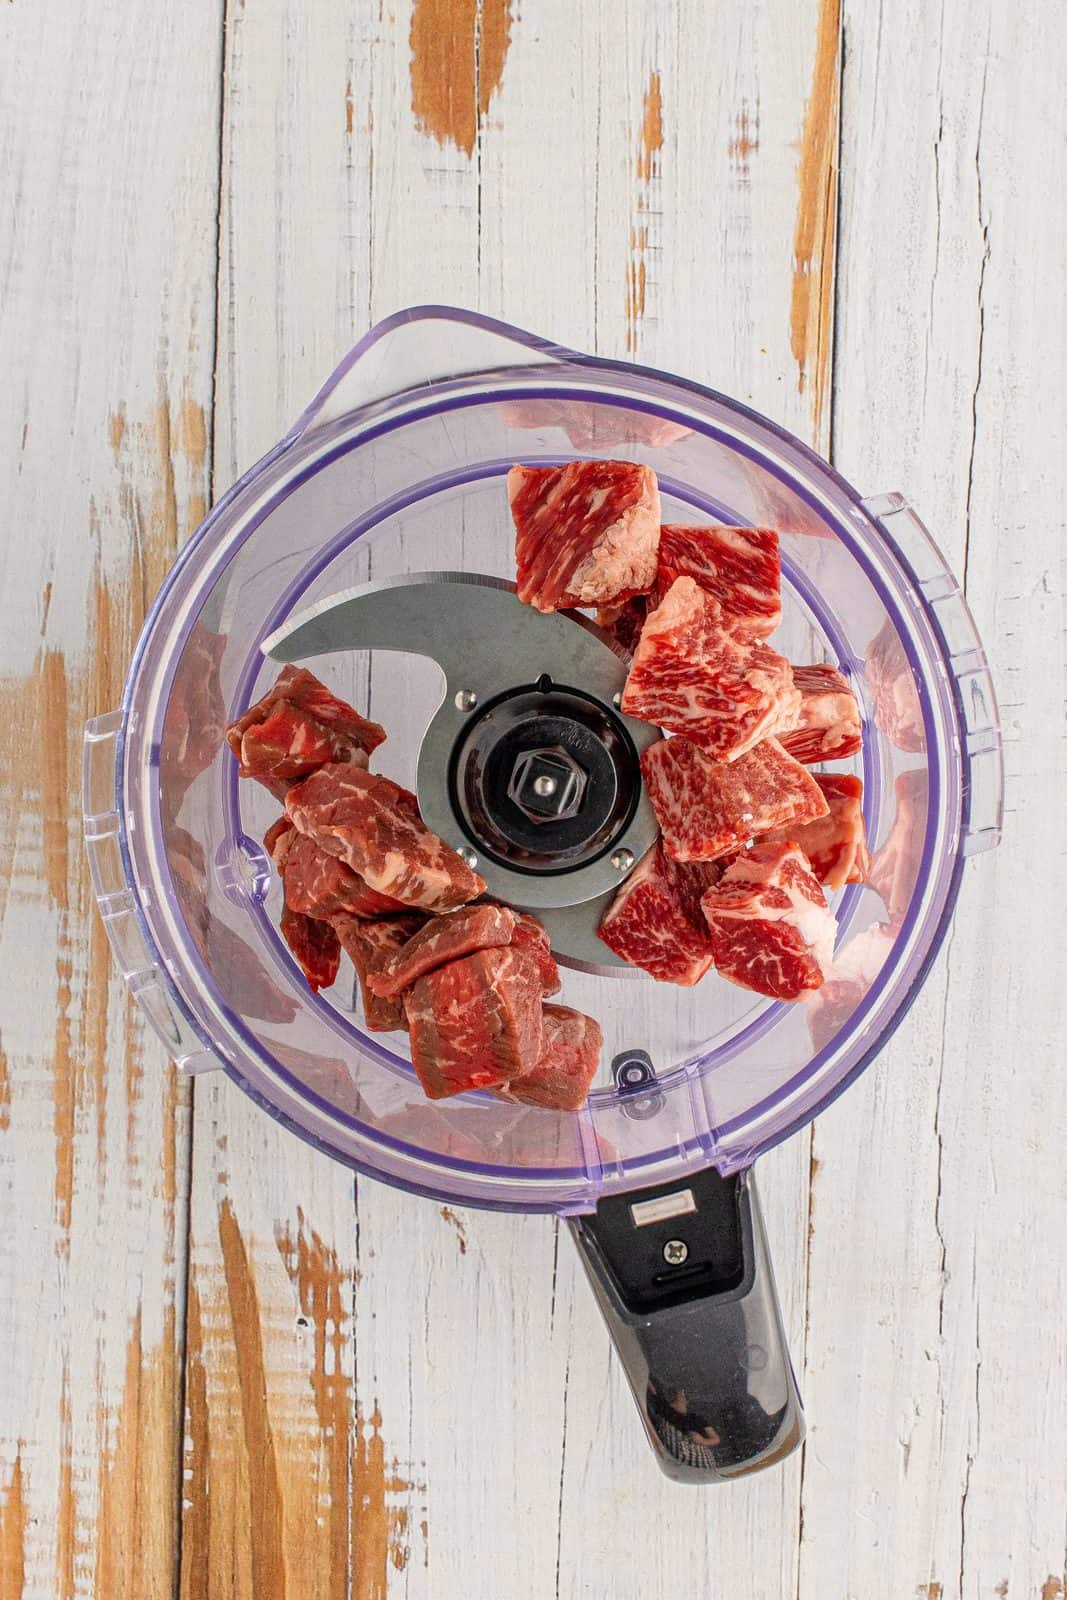 cubed meat shown in the bowl of a food processor